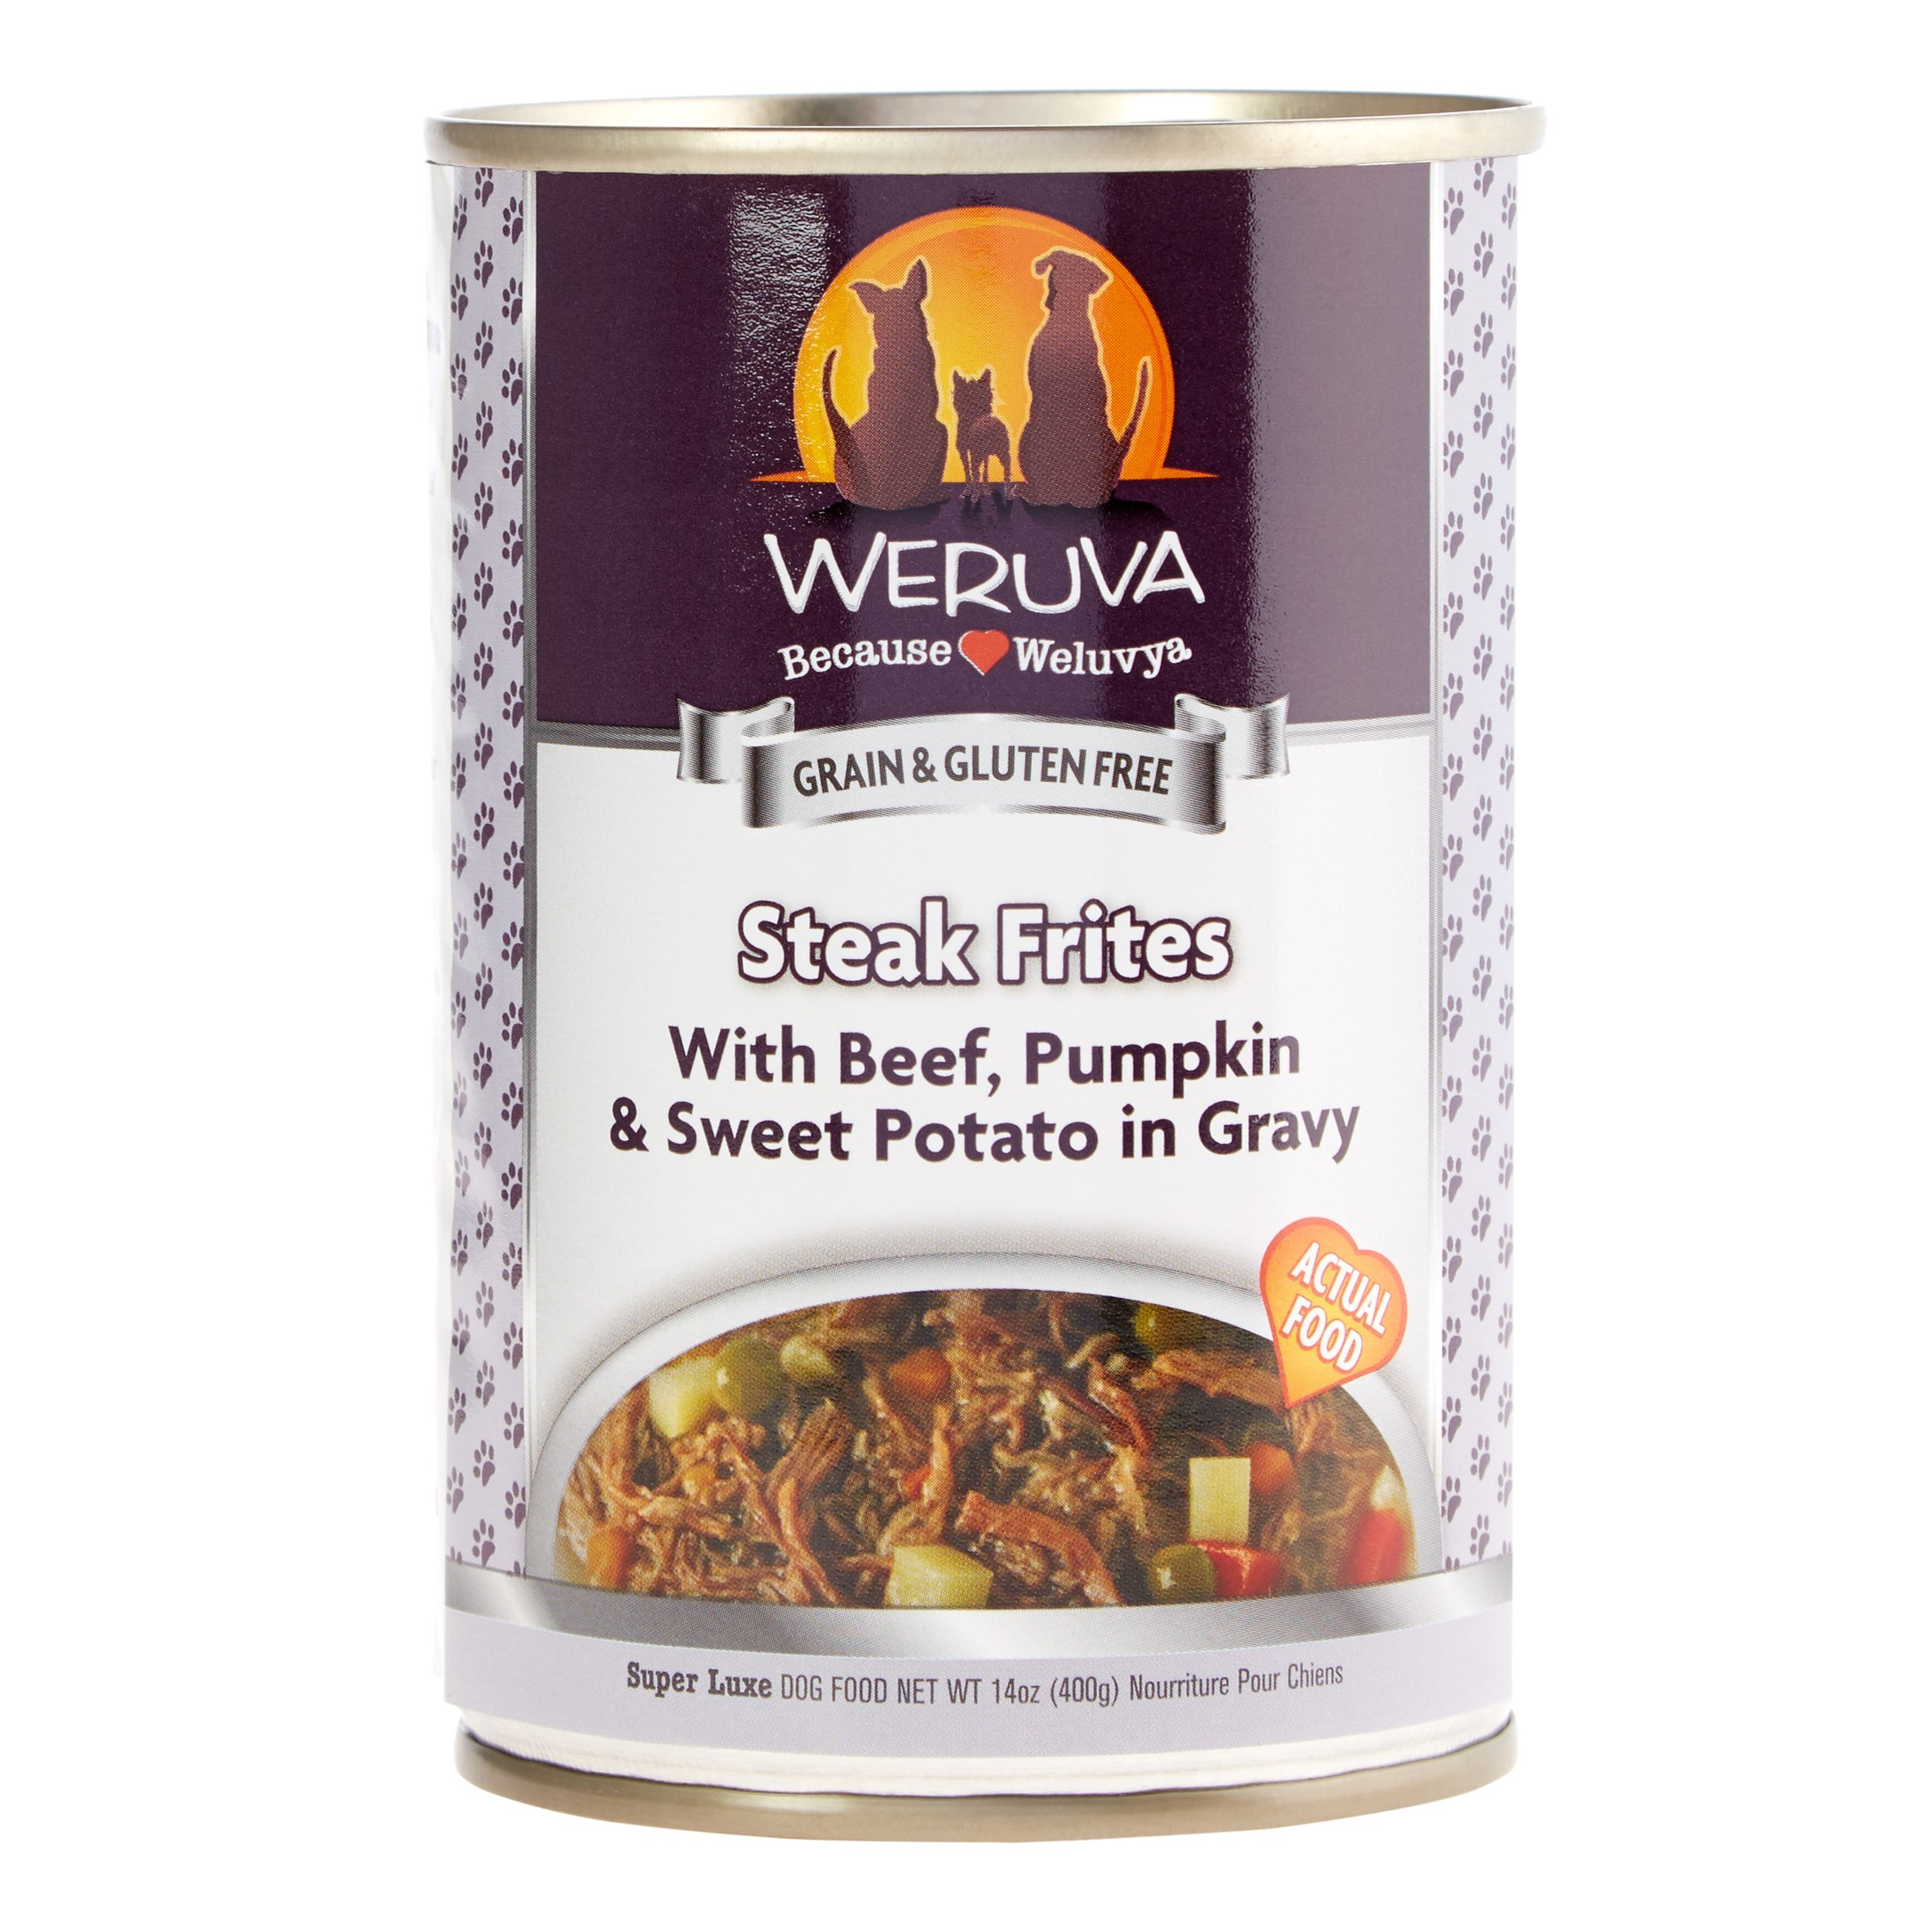 Weruva Human Style Grain-Free Steak Frites with Beef, Pumpkin, & Sweet Potato Wet Dog Food, 14 Oz, Case of 12